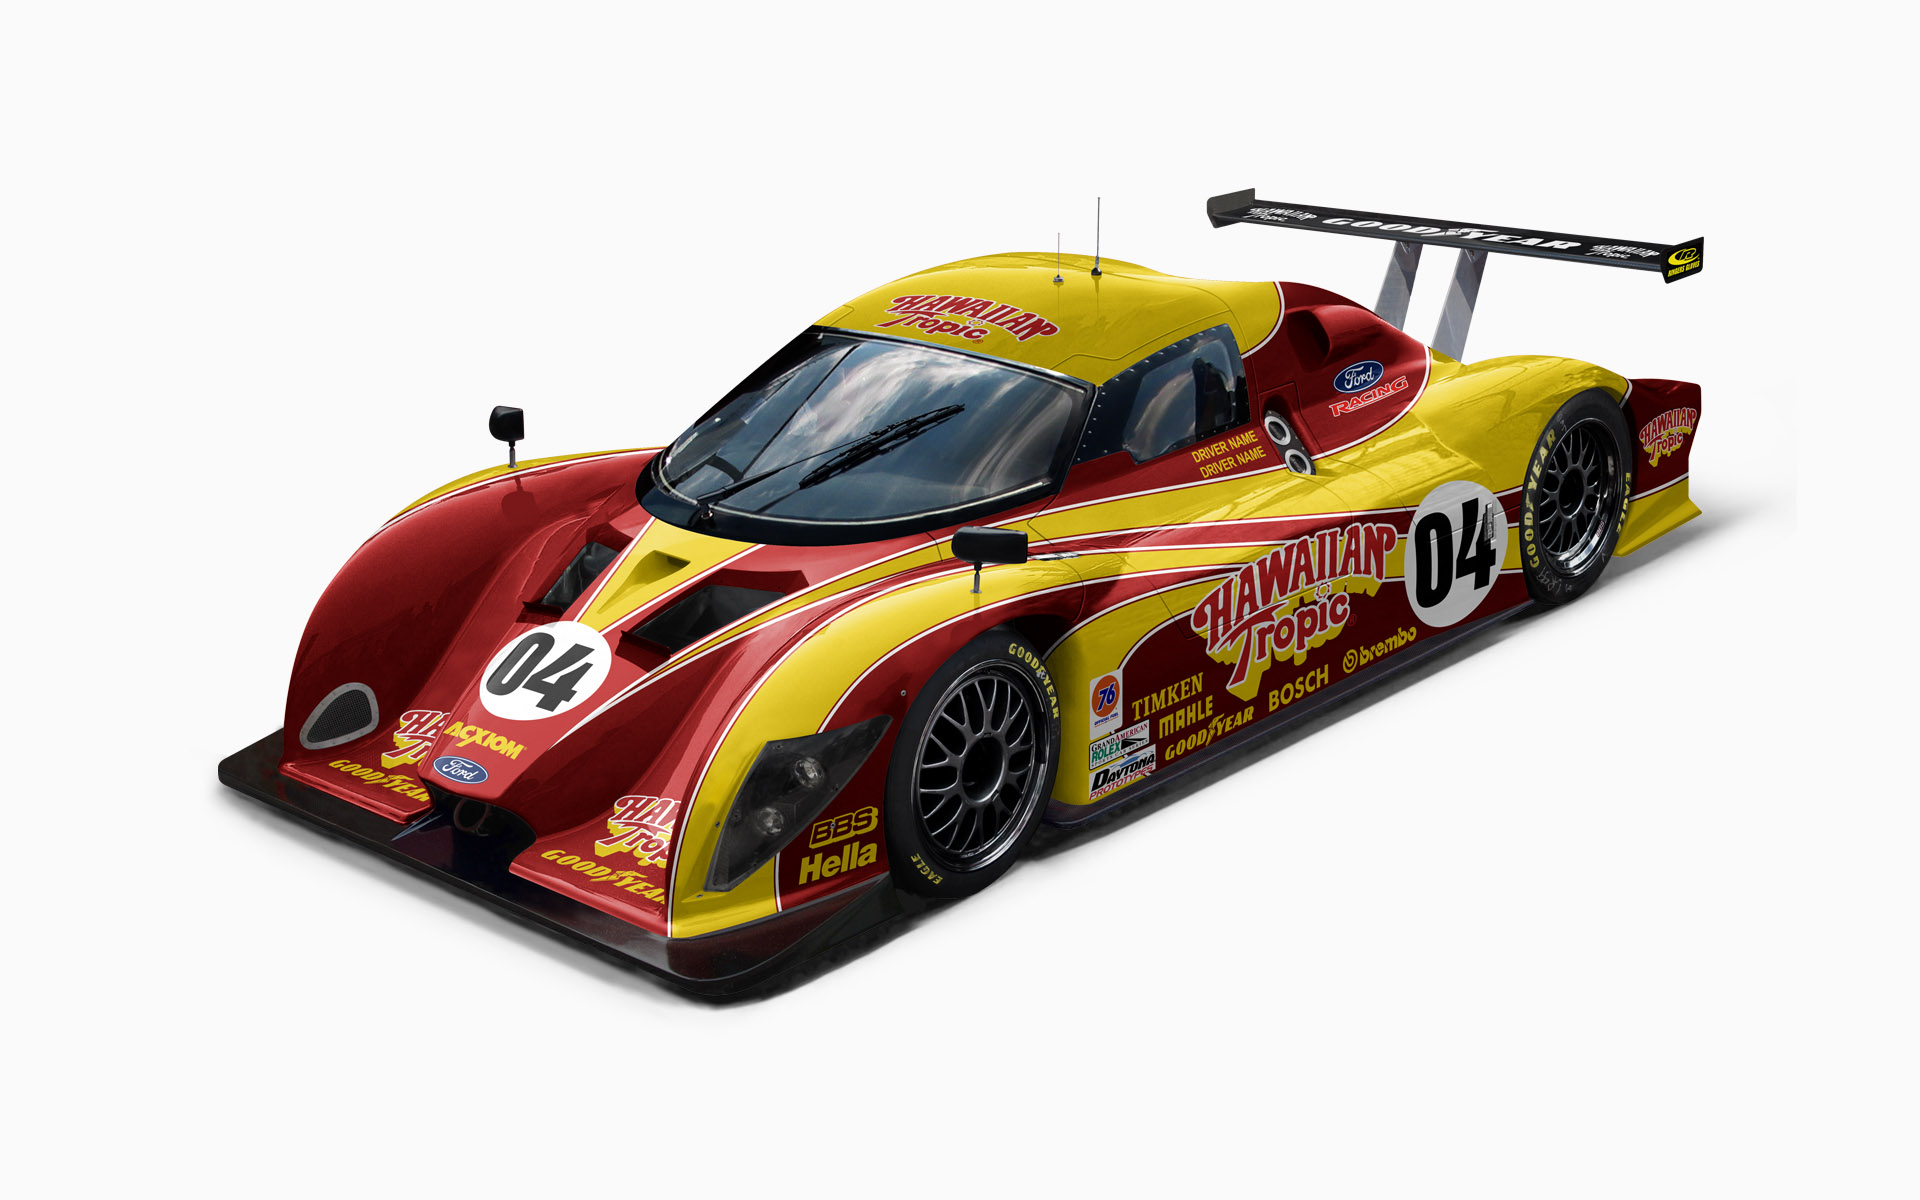 Hawaiian Tropic Multimatic Daytona Prototype Livery Visualization